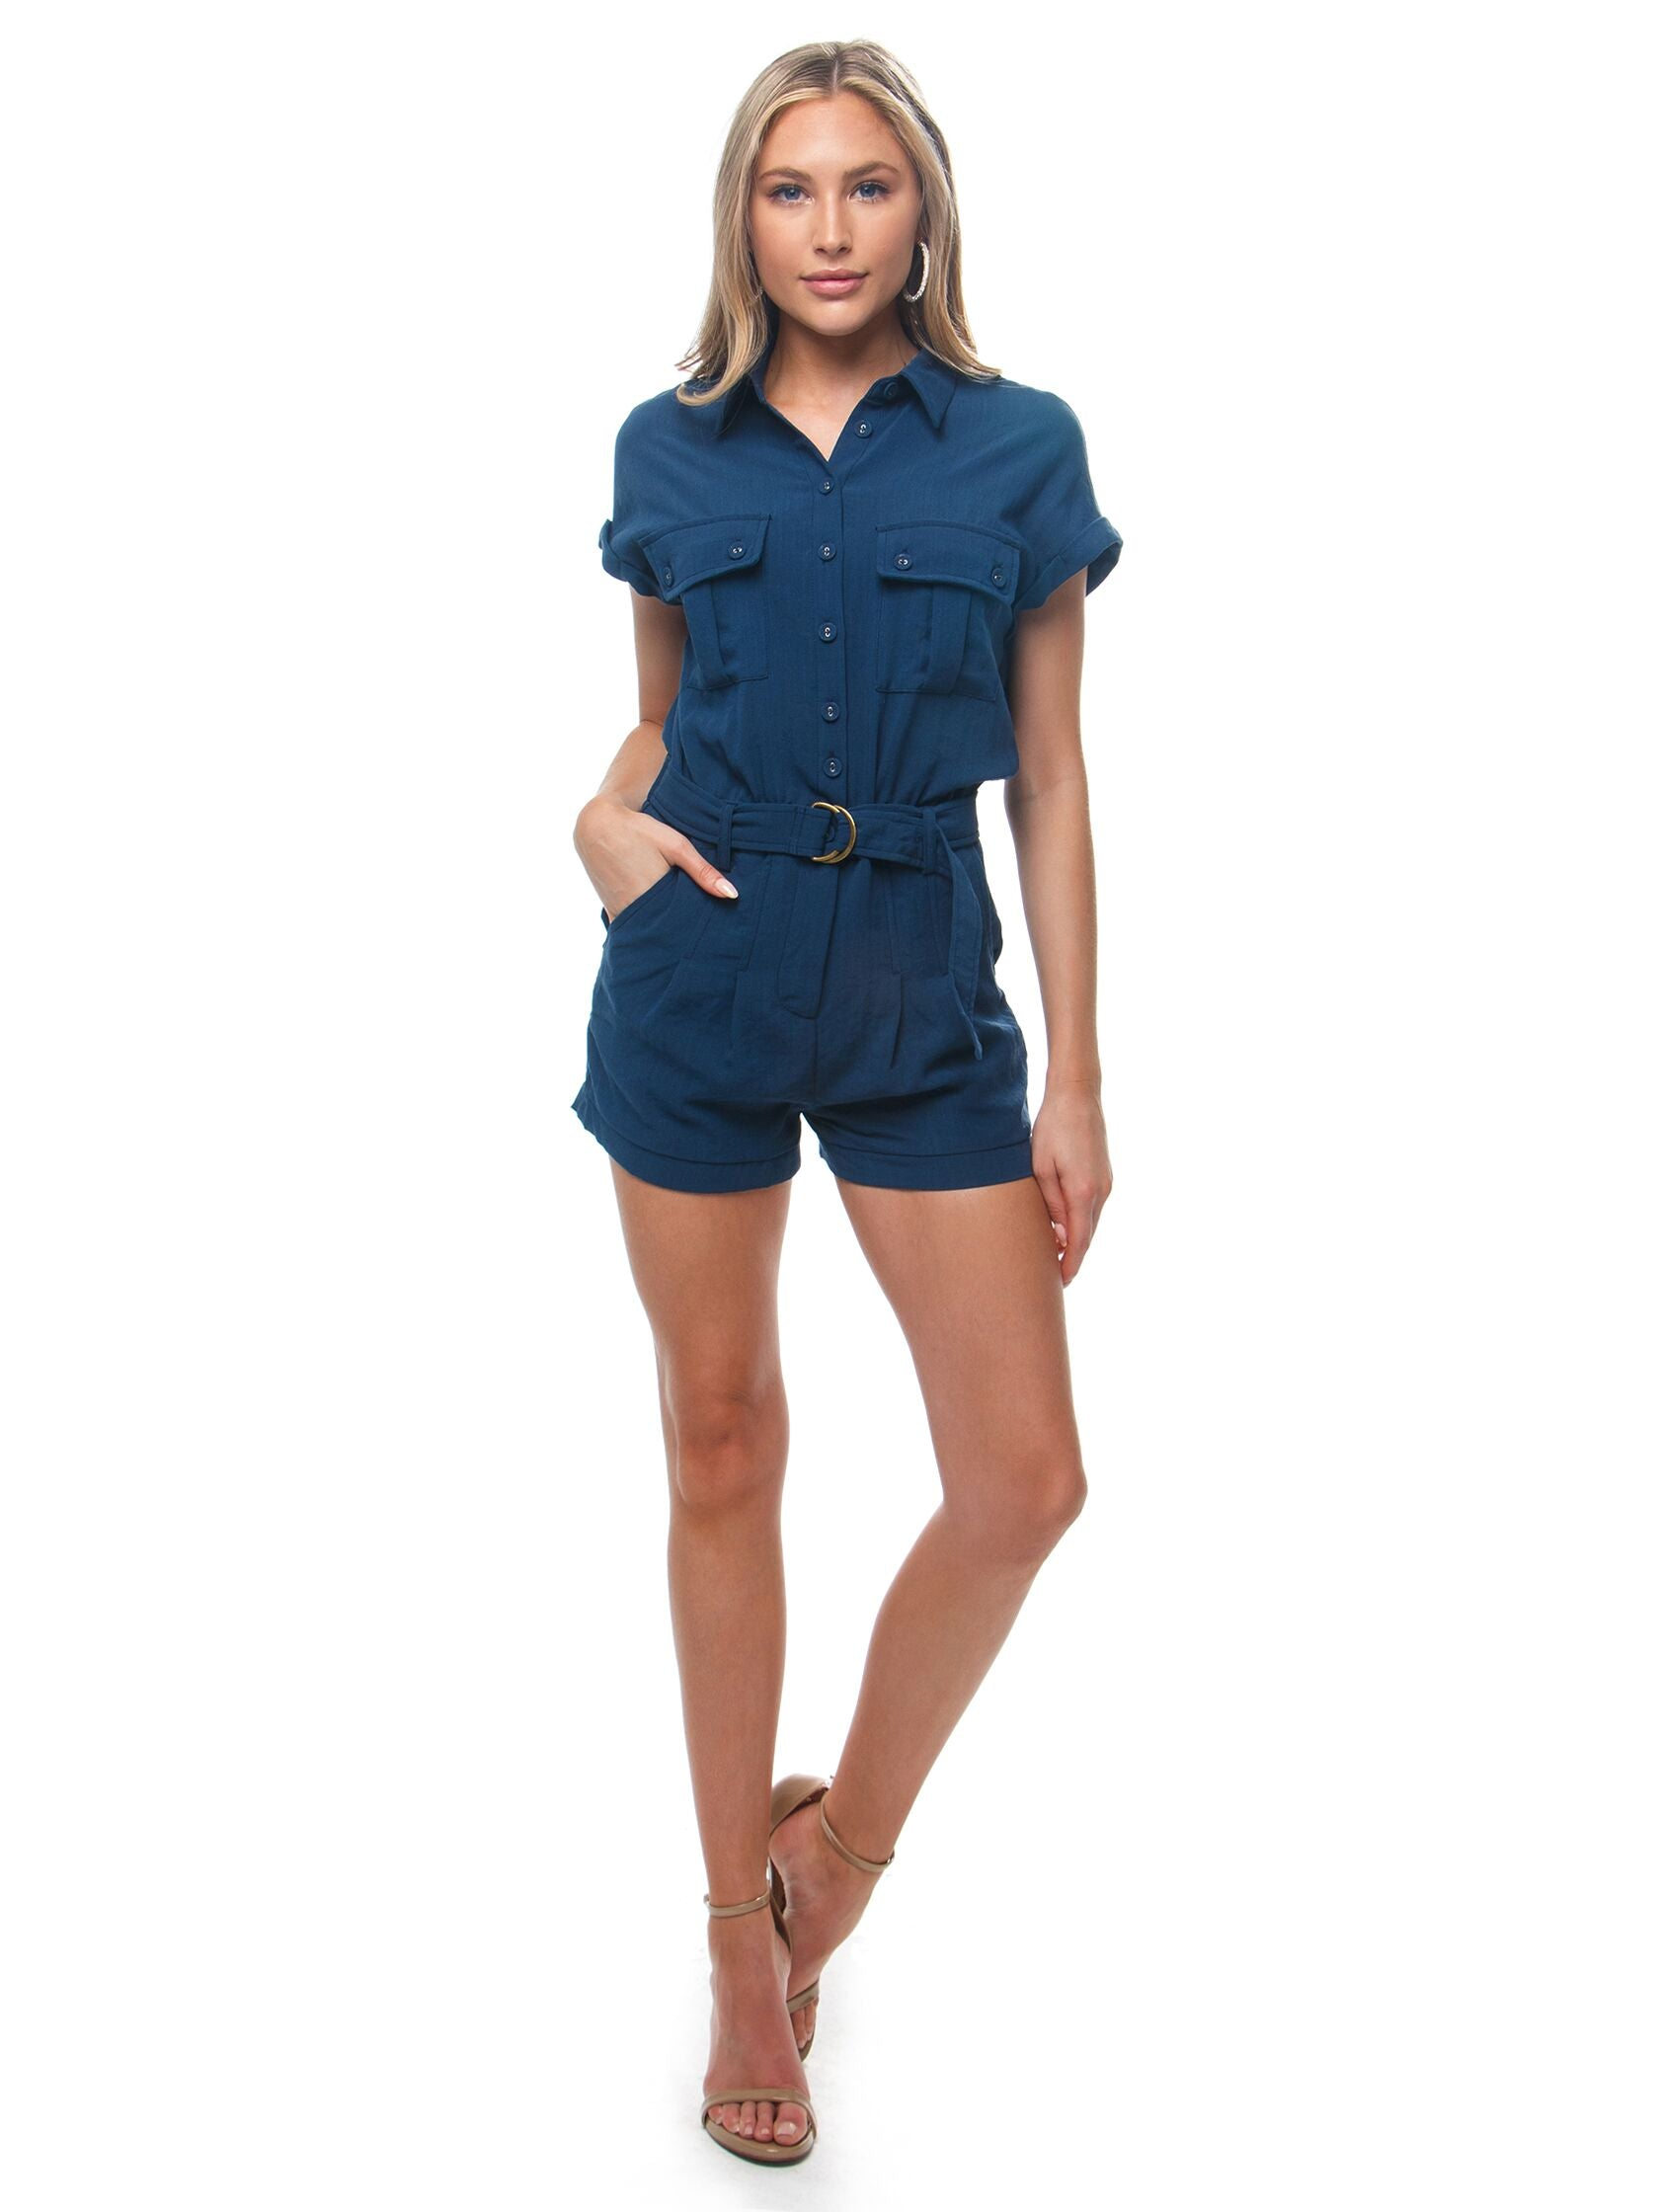 Girl outfit in a romper rental from Heartloom called Jude Romper